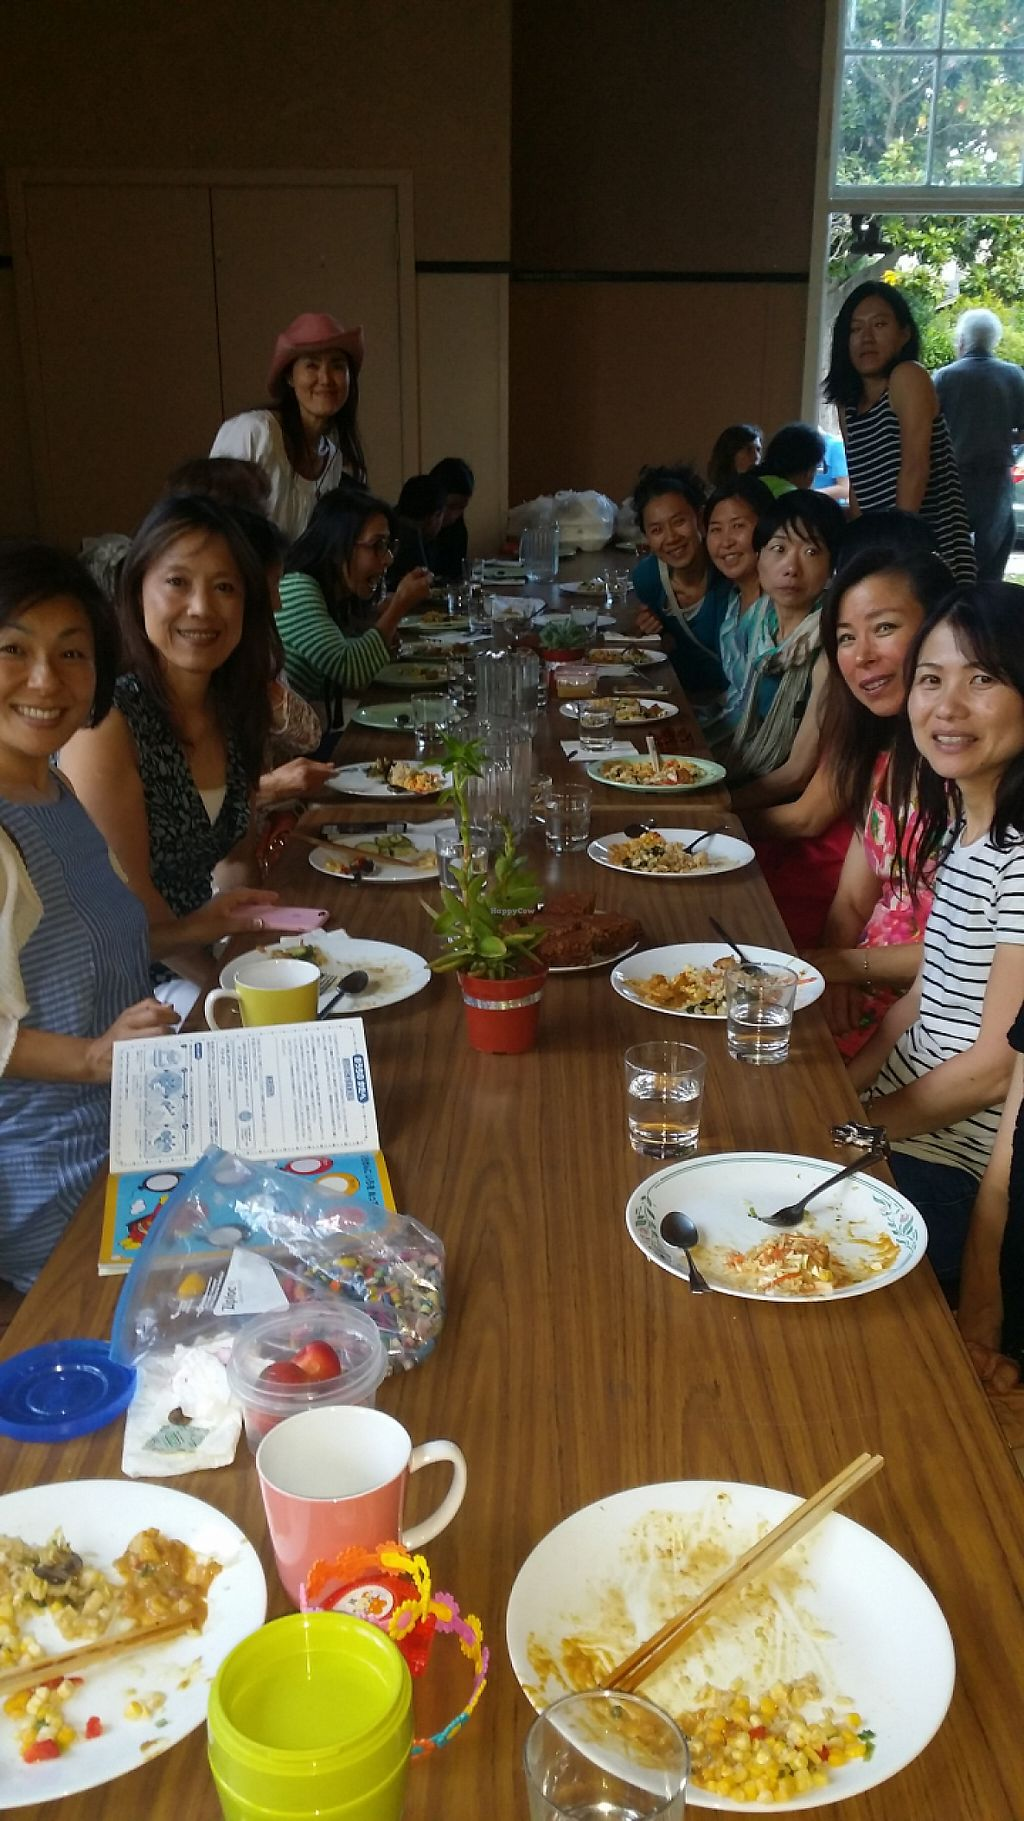 """Photo of Vegan Dinners  by <a href=""""/members/profile/PatriciaJoyBecker"""">PatriciaJoyBecker</a> <br/>Maho Osano's Macrobiotic Cooking Teacher and class dine with us.   <br/> June 28, 2016  - <a href='/contact/abuse/image/16770/188048'>Report</a>"""